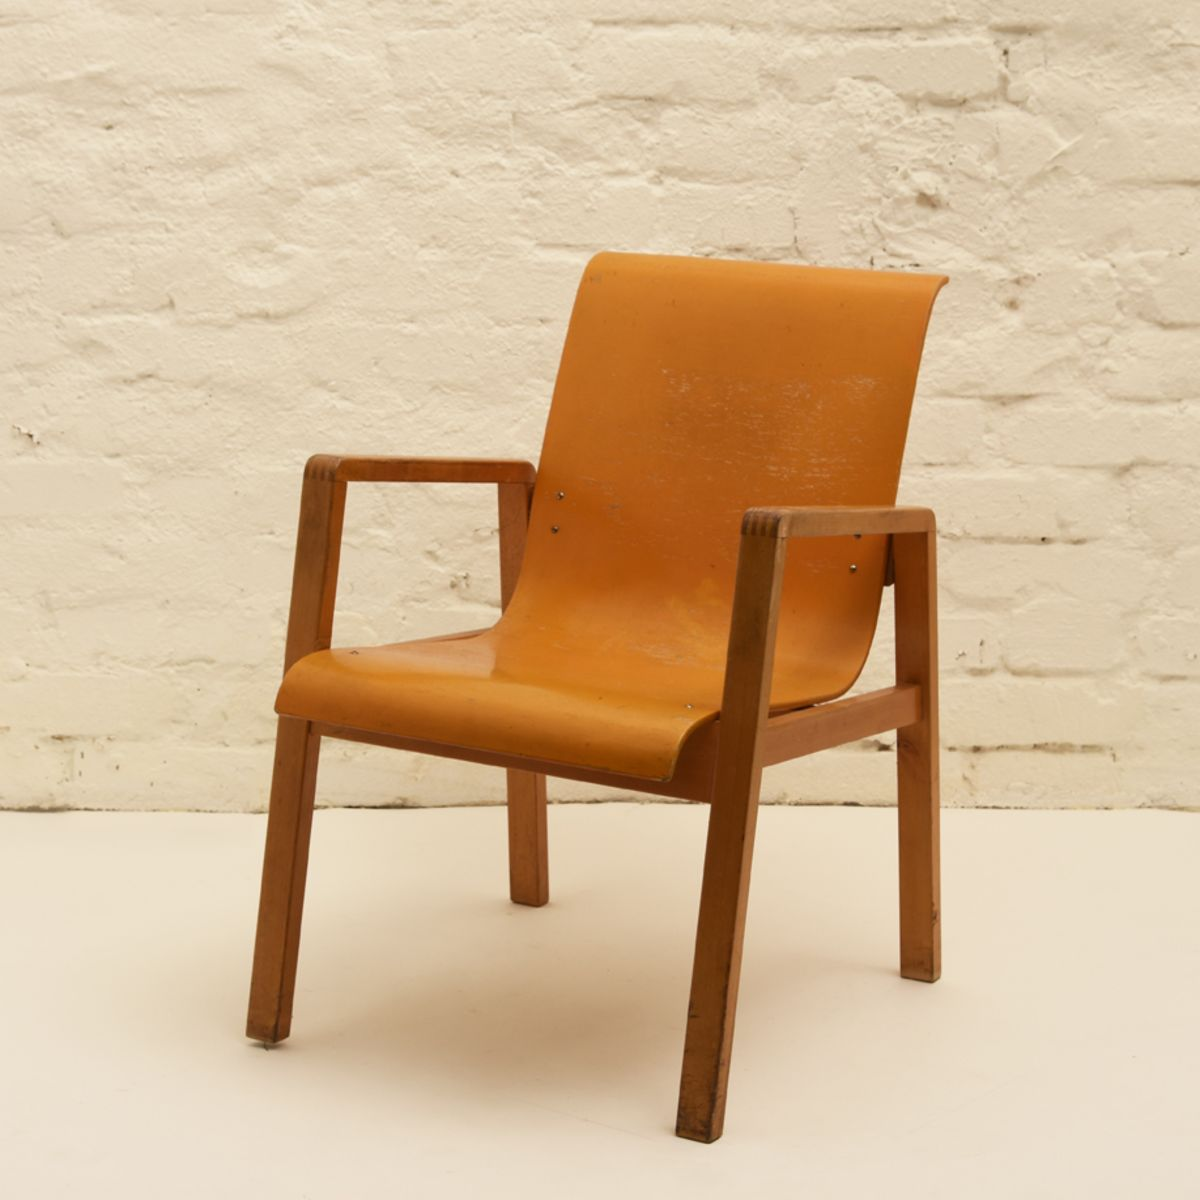 Alvar Aalto Hallway Chair Orange